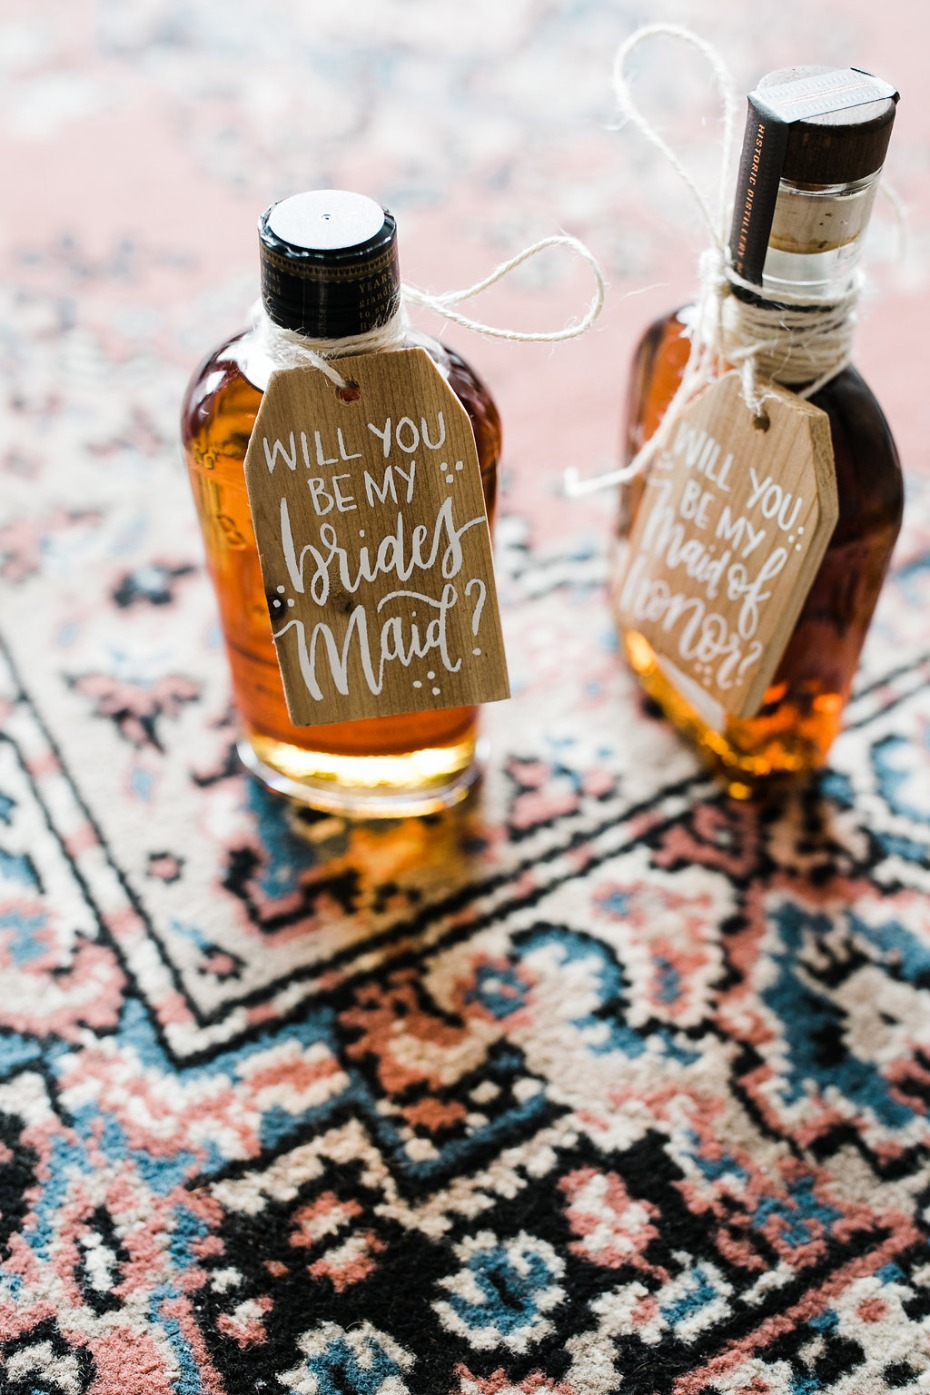 Bourbon for the bridesmaids